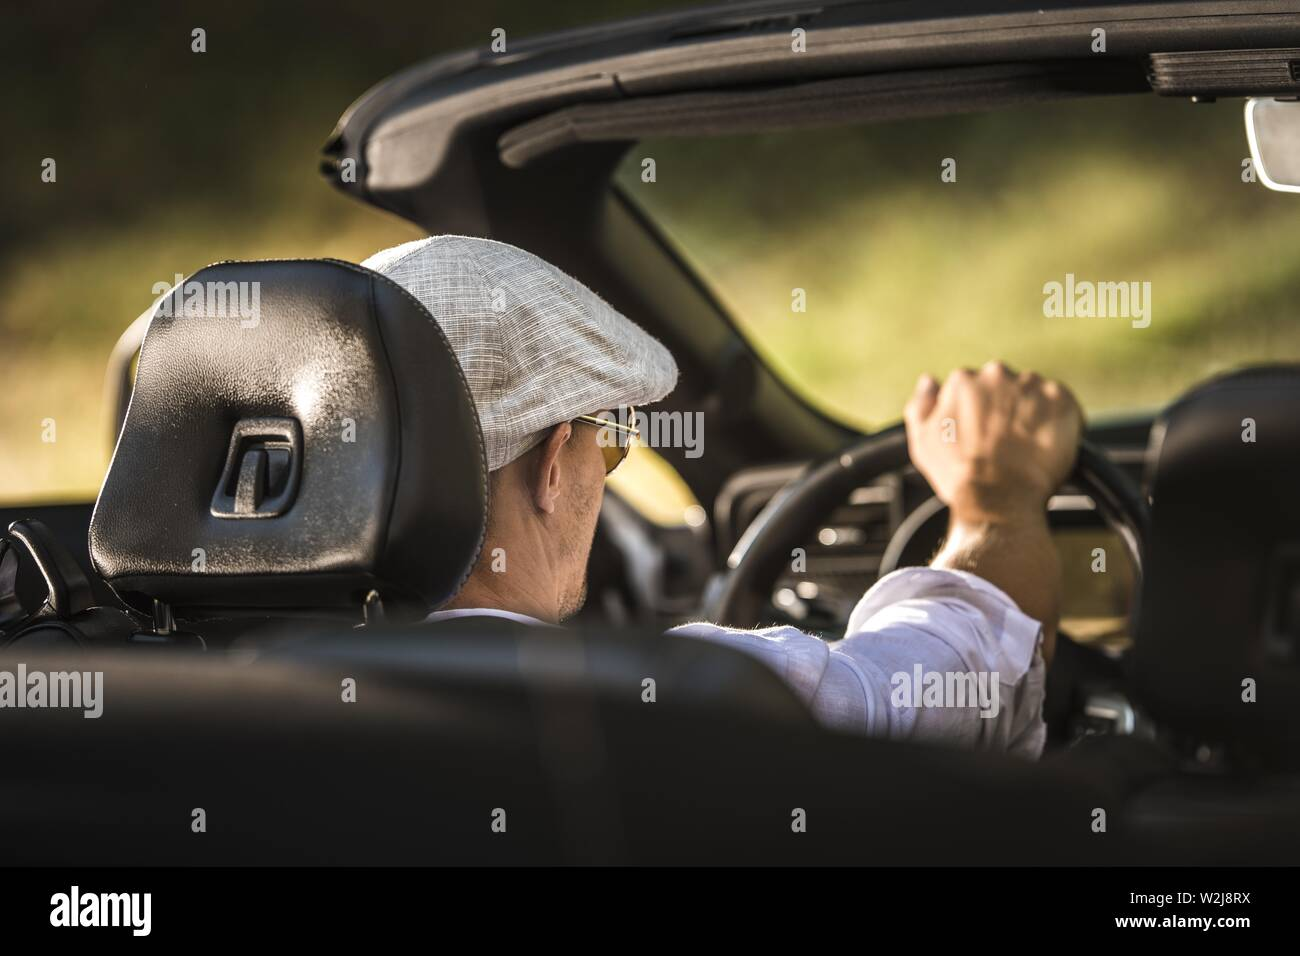 Caucasian Men in His 30s Inside Convertible Vehicle with Open Roof on His Road to Destination. - Stock Image